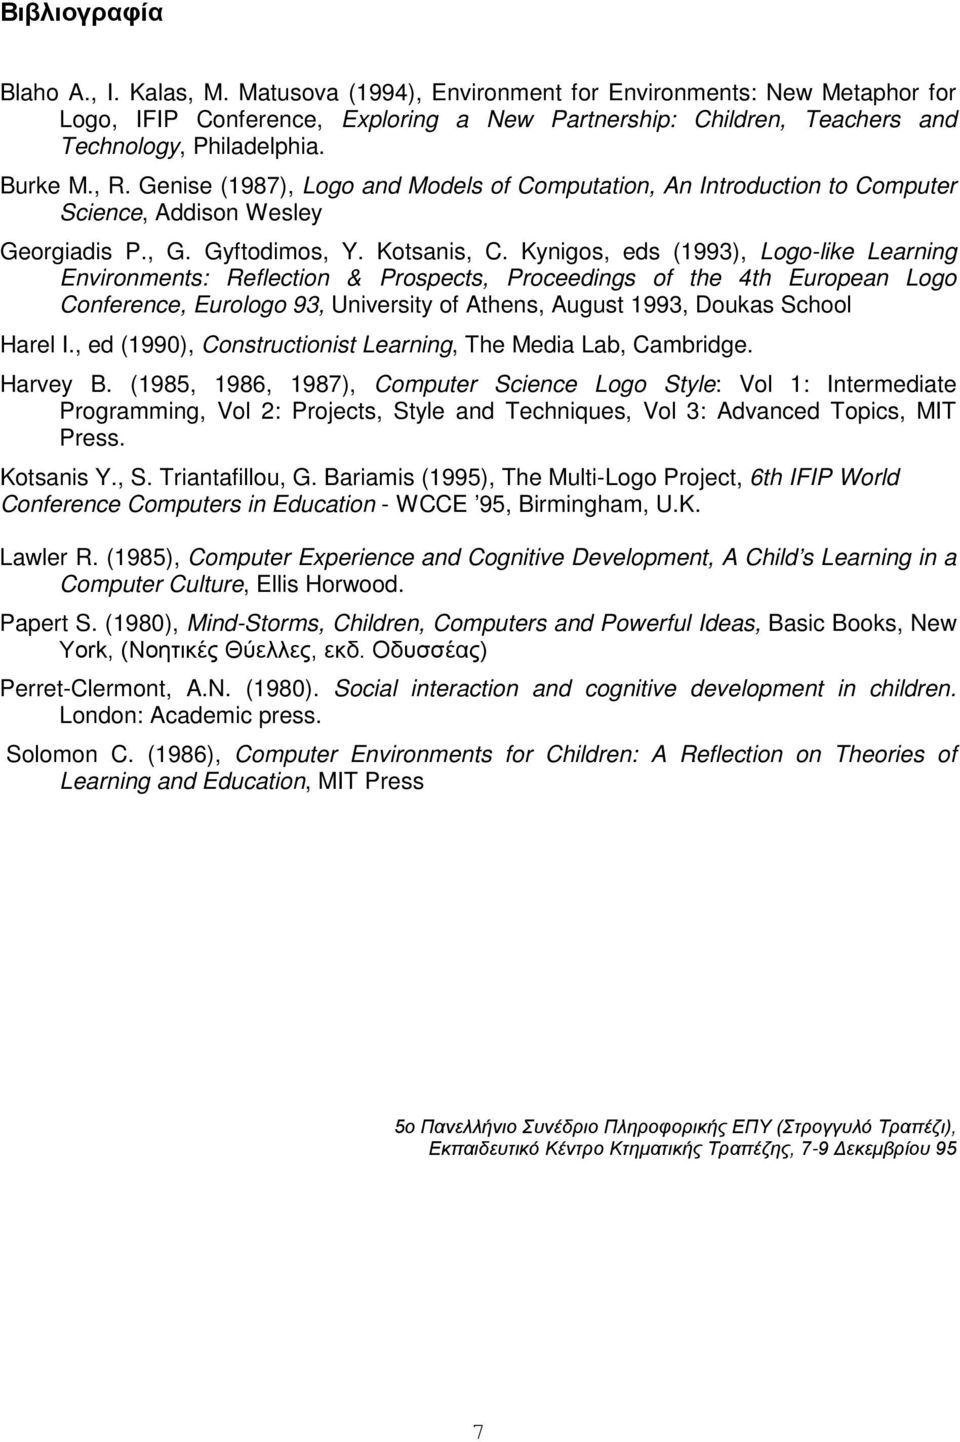 Kynigos, eds (1993), Logo-like Learning Environments: Reflection & Prospects, Proceedings of the 4th European Logo Conference, Eurologo 93, University of Athens, August 1993, Doukas School Harel I.